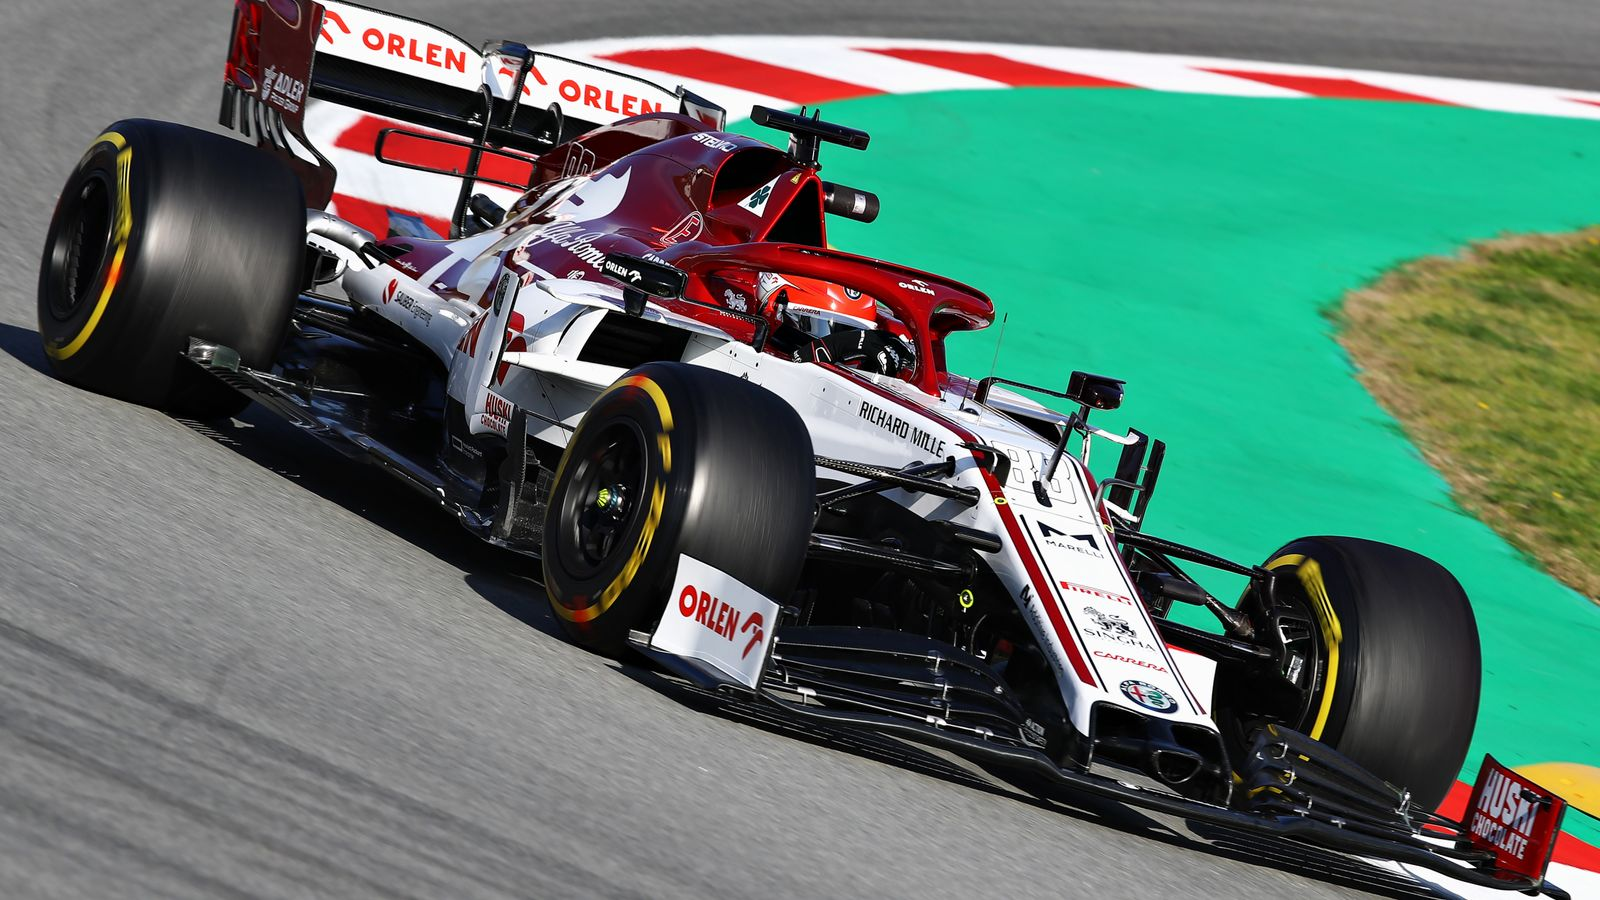 F1 Testing, Test Two Day One: Robert Kubica ahead for Alfa Romeo